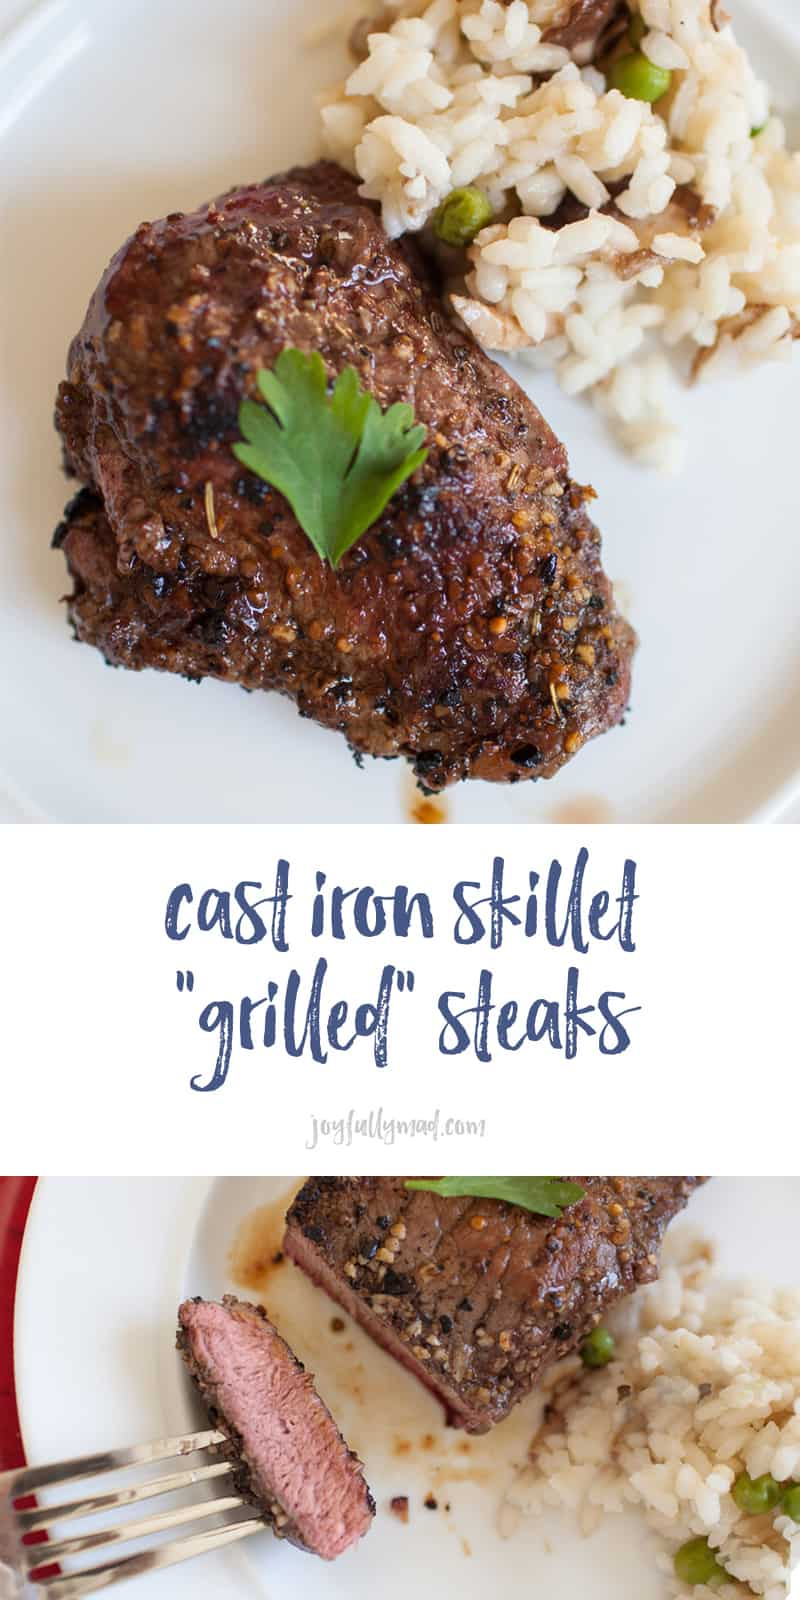 These cast iron skillet grilled steaks are so simple to make and a perfect way to celebrate any occasion! cast iron recipes | steak recipes | how to cook a steak | grilled steak | cast iron steaks | filet mignon | date night at home | date night recipes | steak dinner at home